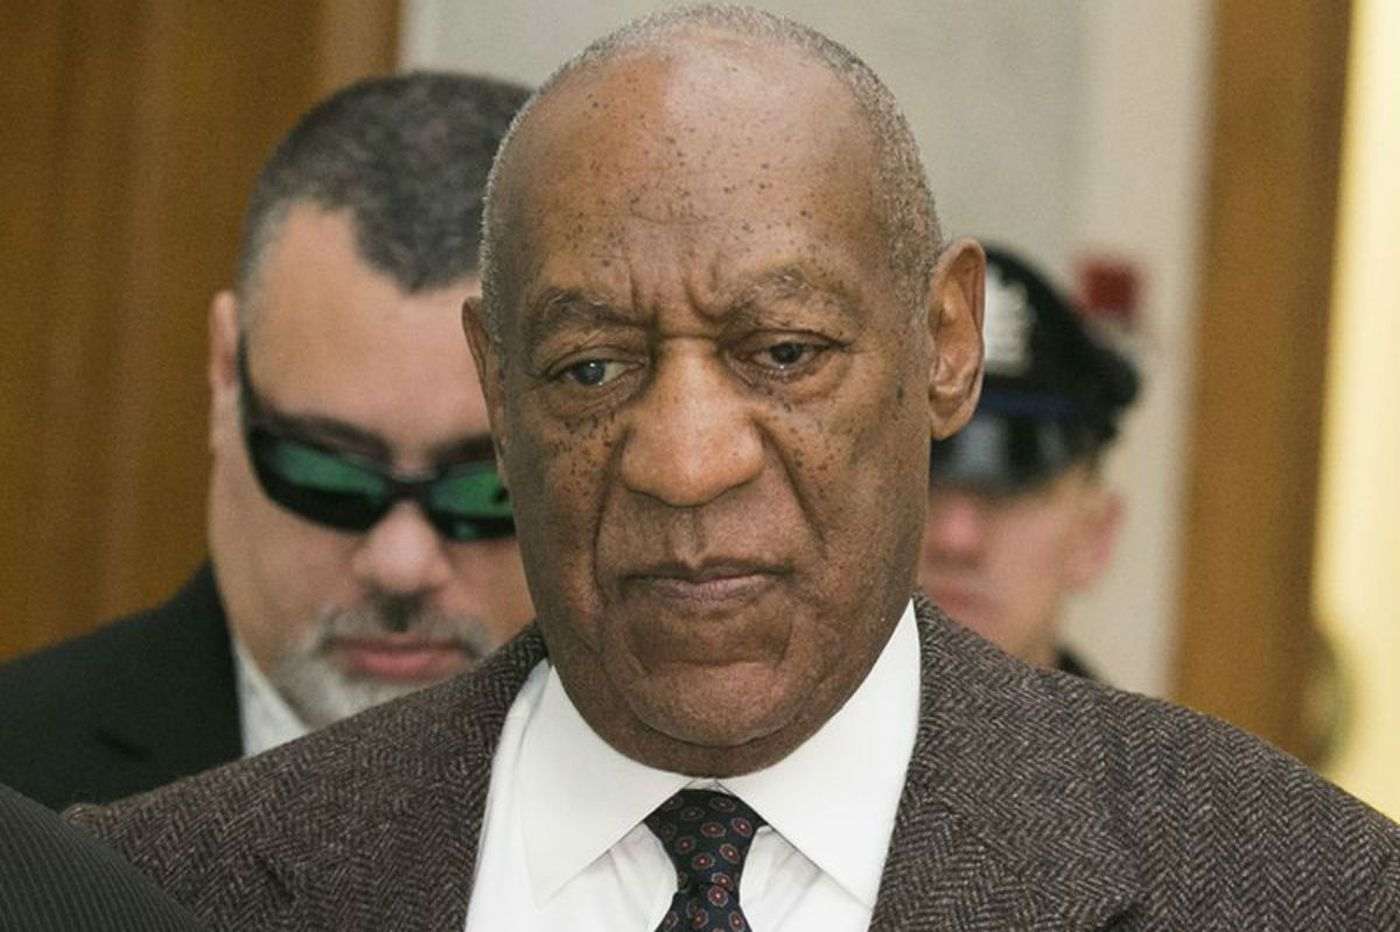 Commentary: More at stake for justice system than case against Cosby